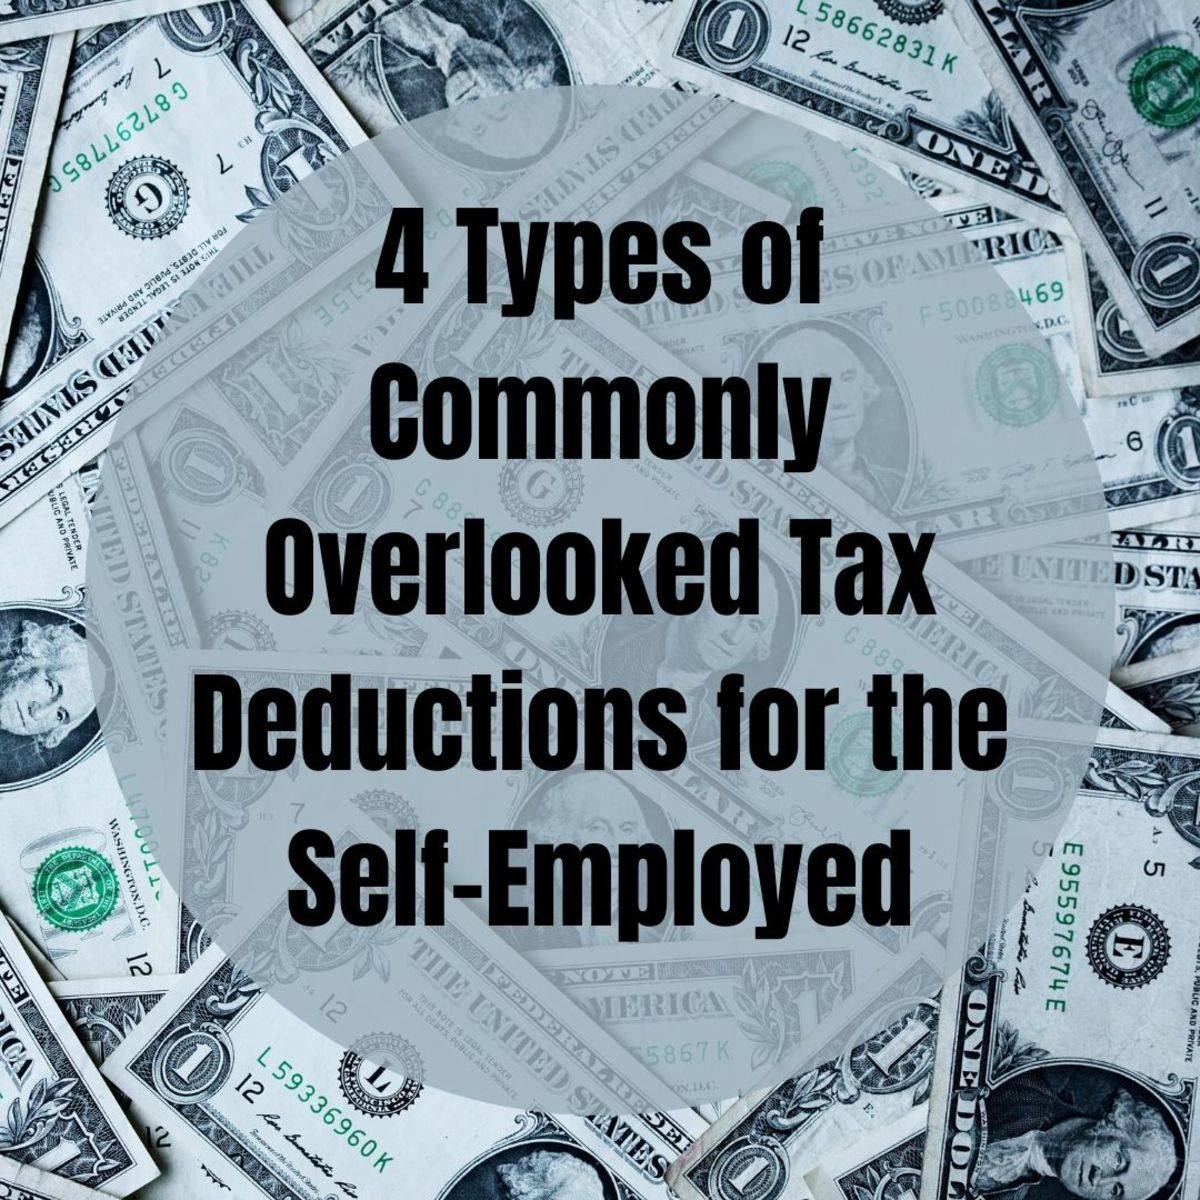 4 Types of Commonly Overlooked Self-Employed Tax Deductions